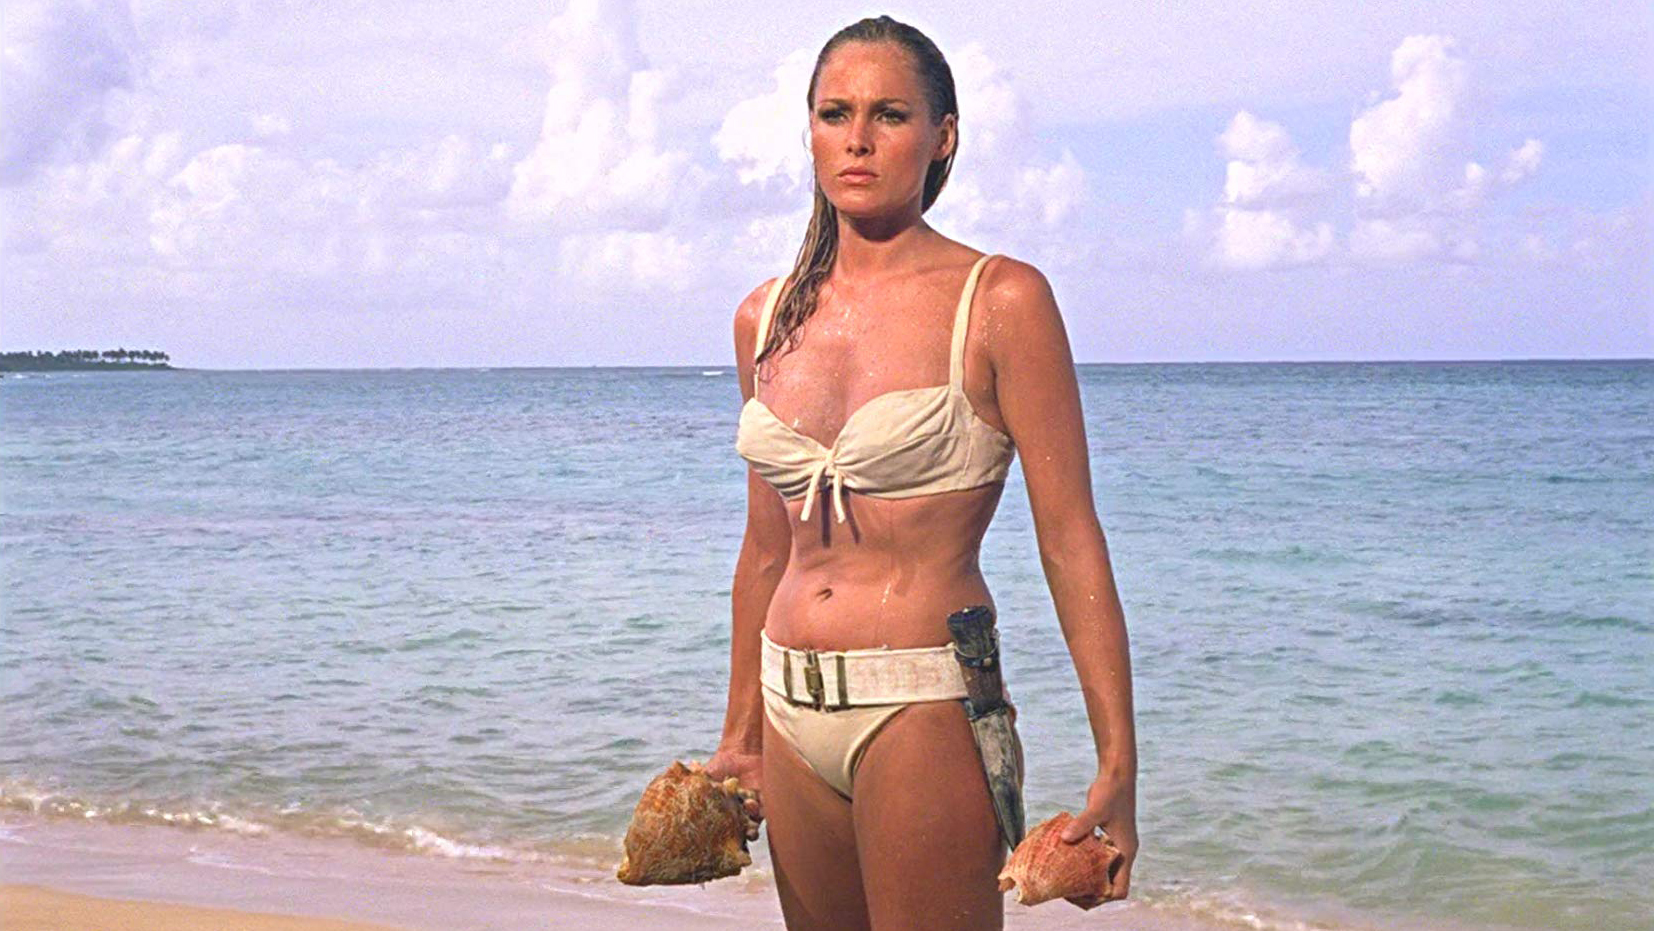 Ursula Andress' white 'Dr. No' bikini could fetch $500K at auction - CNN  Style